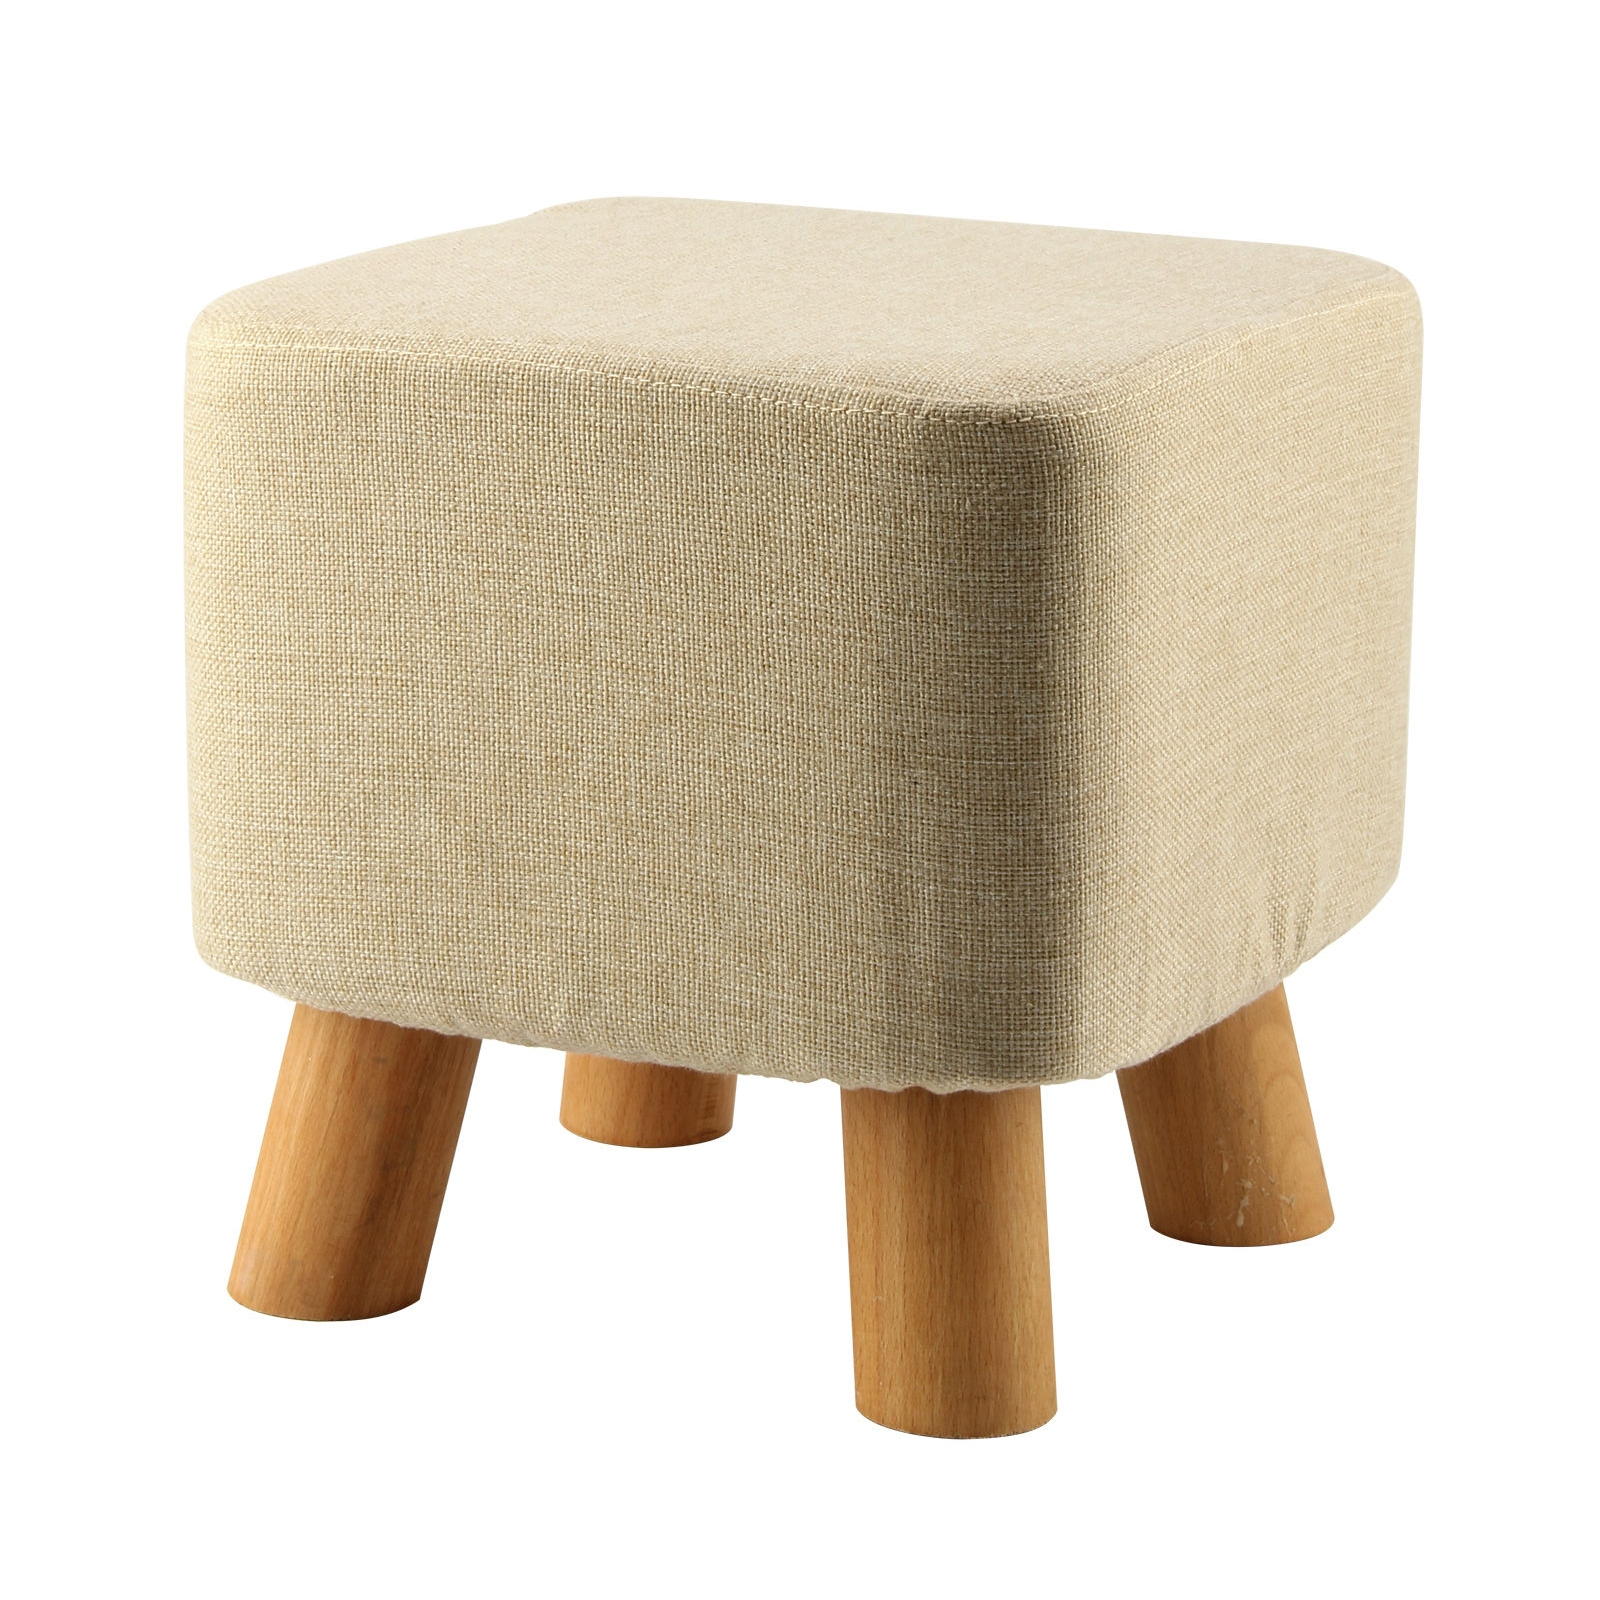 Online Get Cheap Footstool Wooden Aliexpress Alibaba Group With Cheap Footstools And Pouffes (Photo 3 of 15)